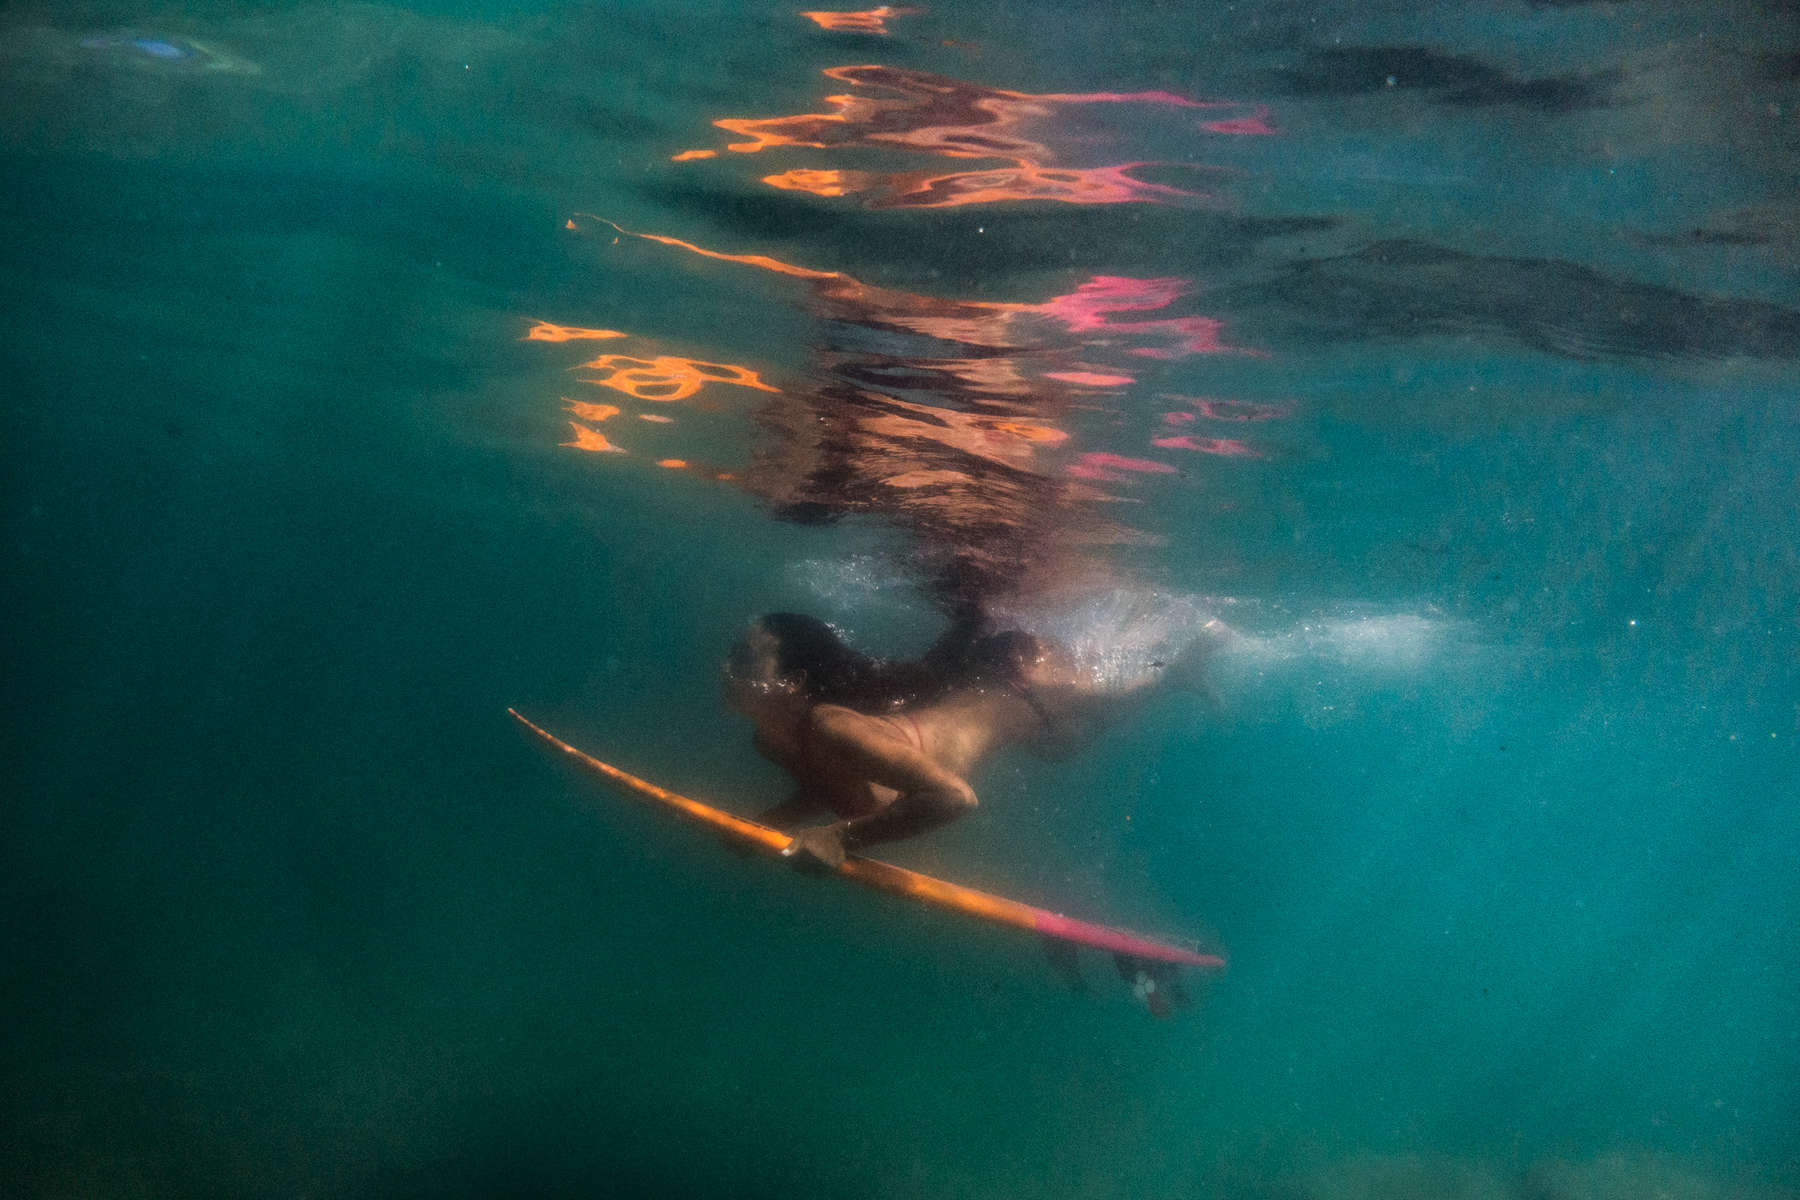 Irie Fitzgerald, 13, junior champion surfer, has lived on Guam her whole life. Even threats made by North Korea to harm her island doesn't keep her from being in the water. (Aug 15, 2017)Photo by Nancy Borowick